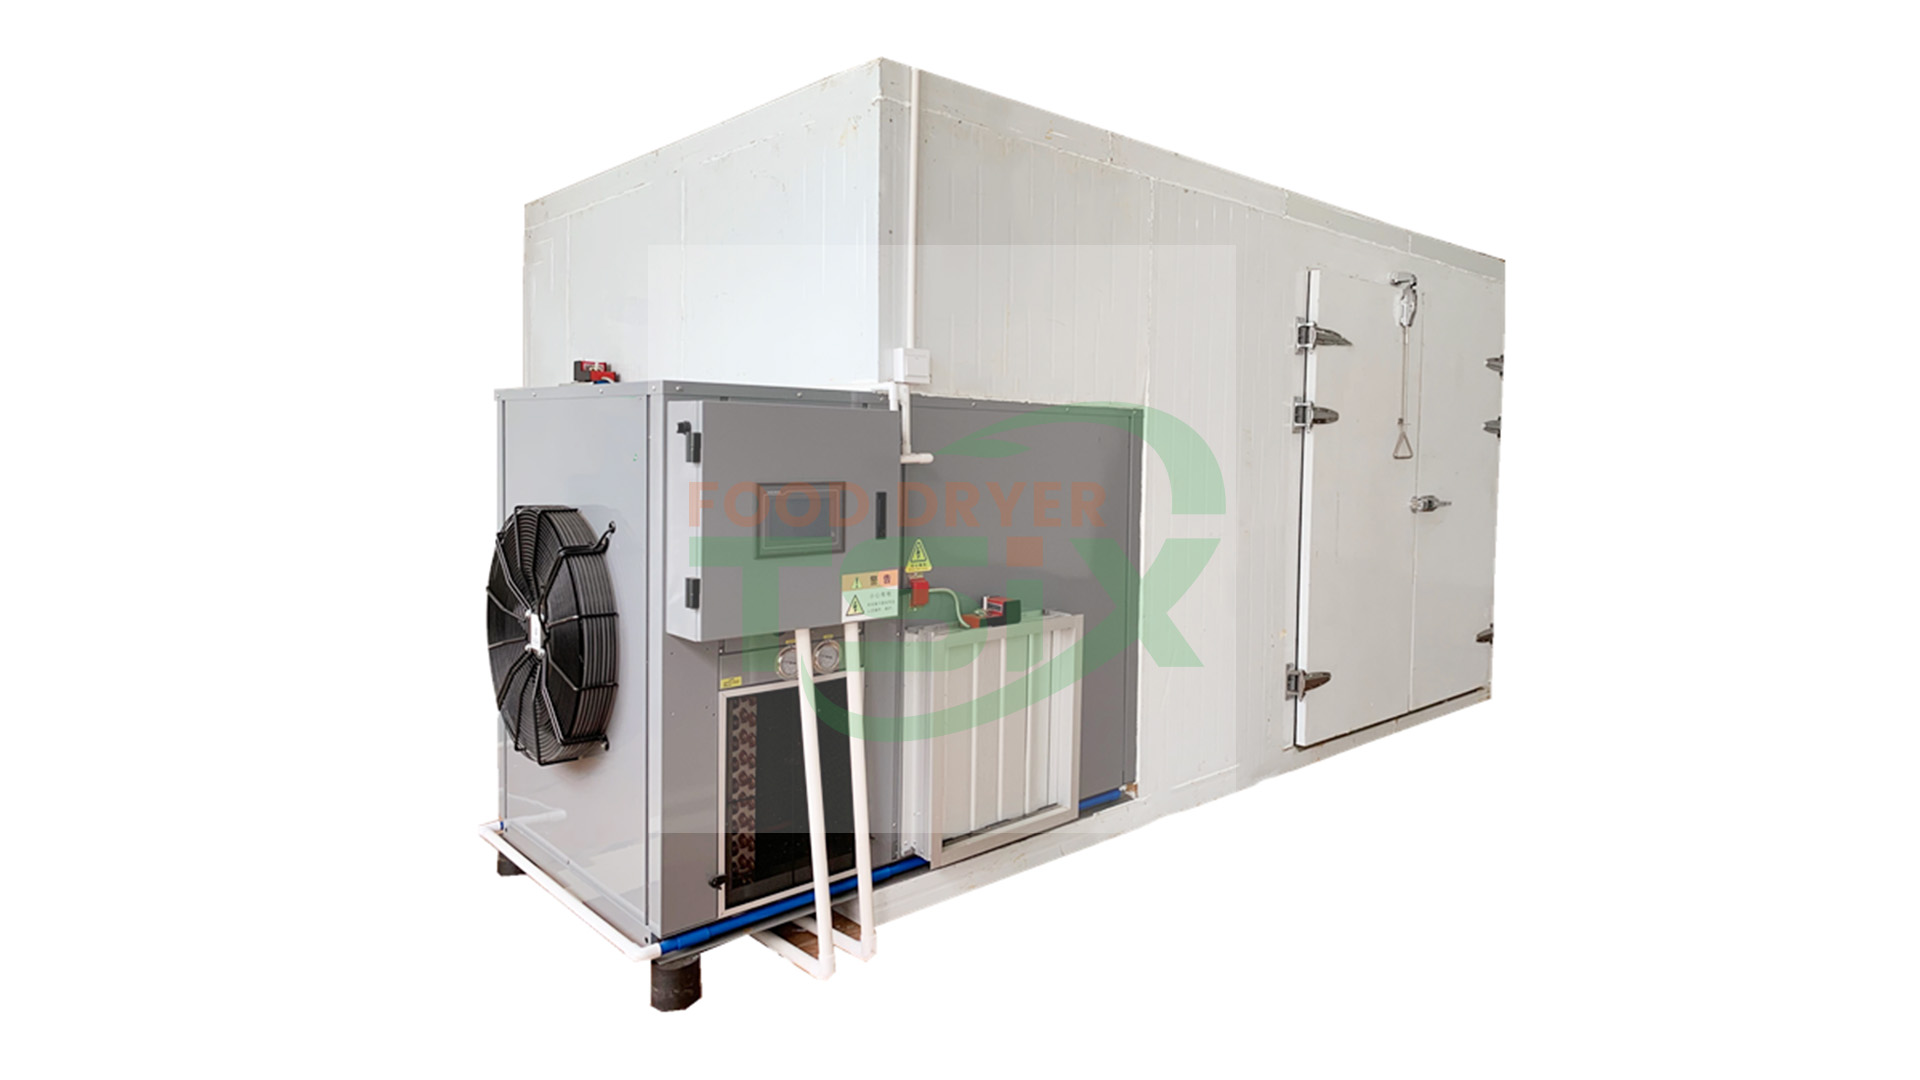 700kg Freeze Fish Drying Machine Dried Sardines Dehydrator Drying  Fish Oven DPHG080S-X Supplier